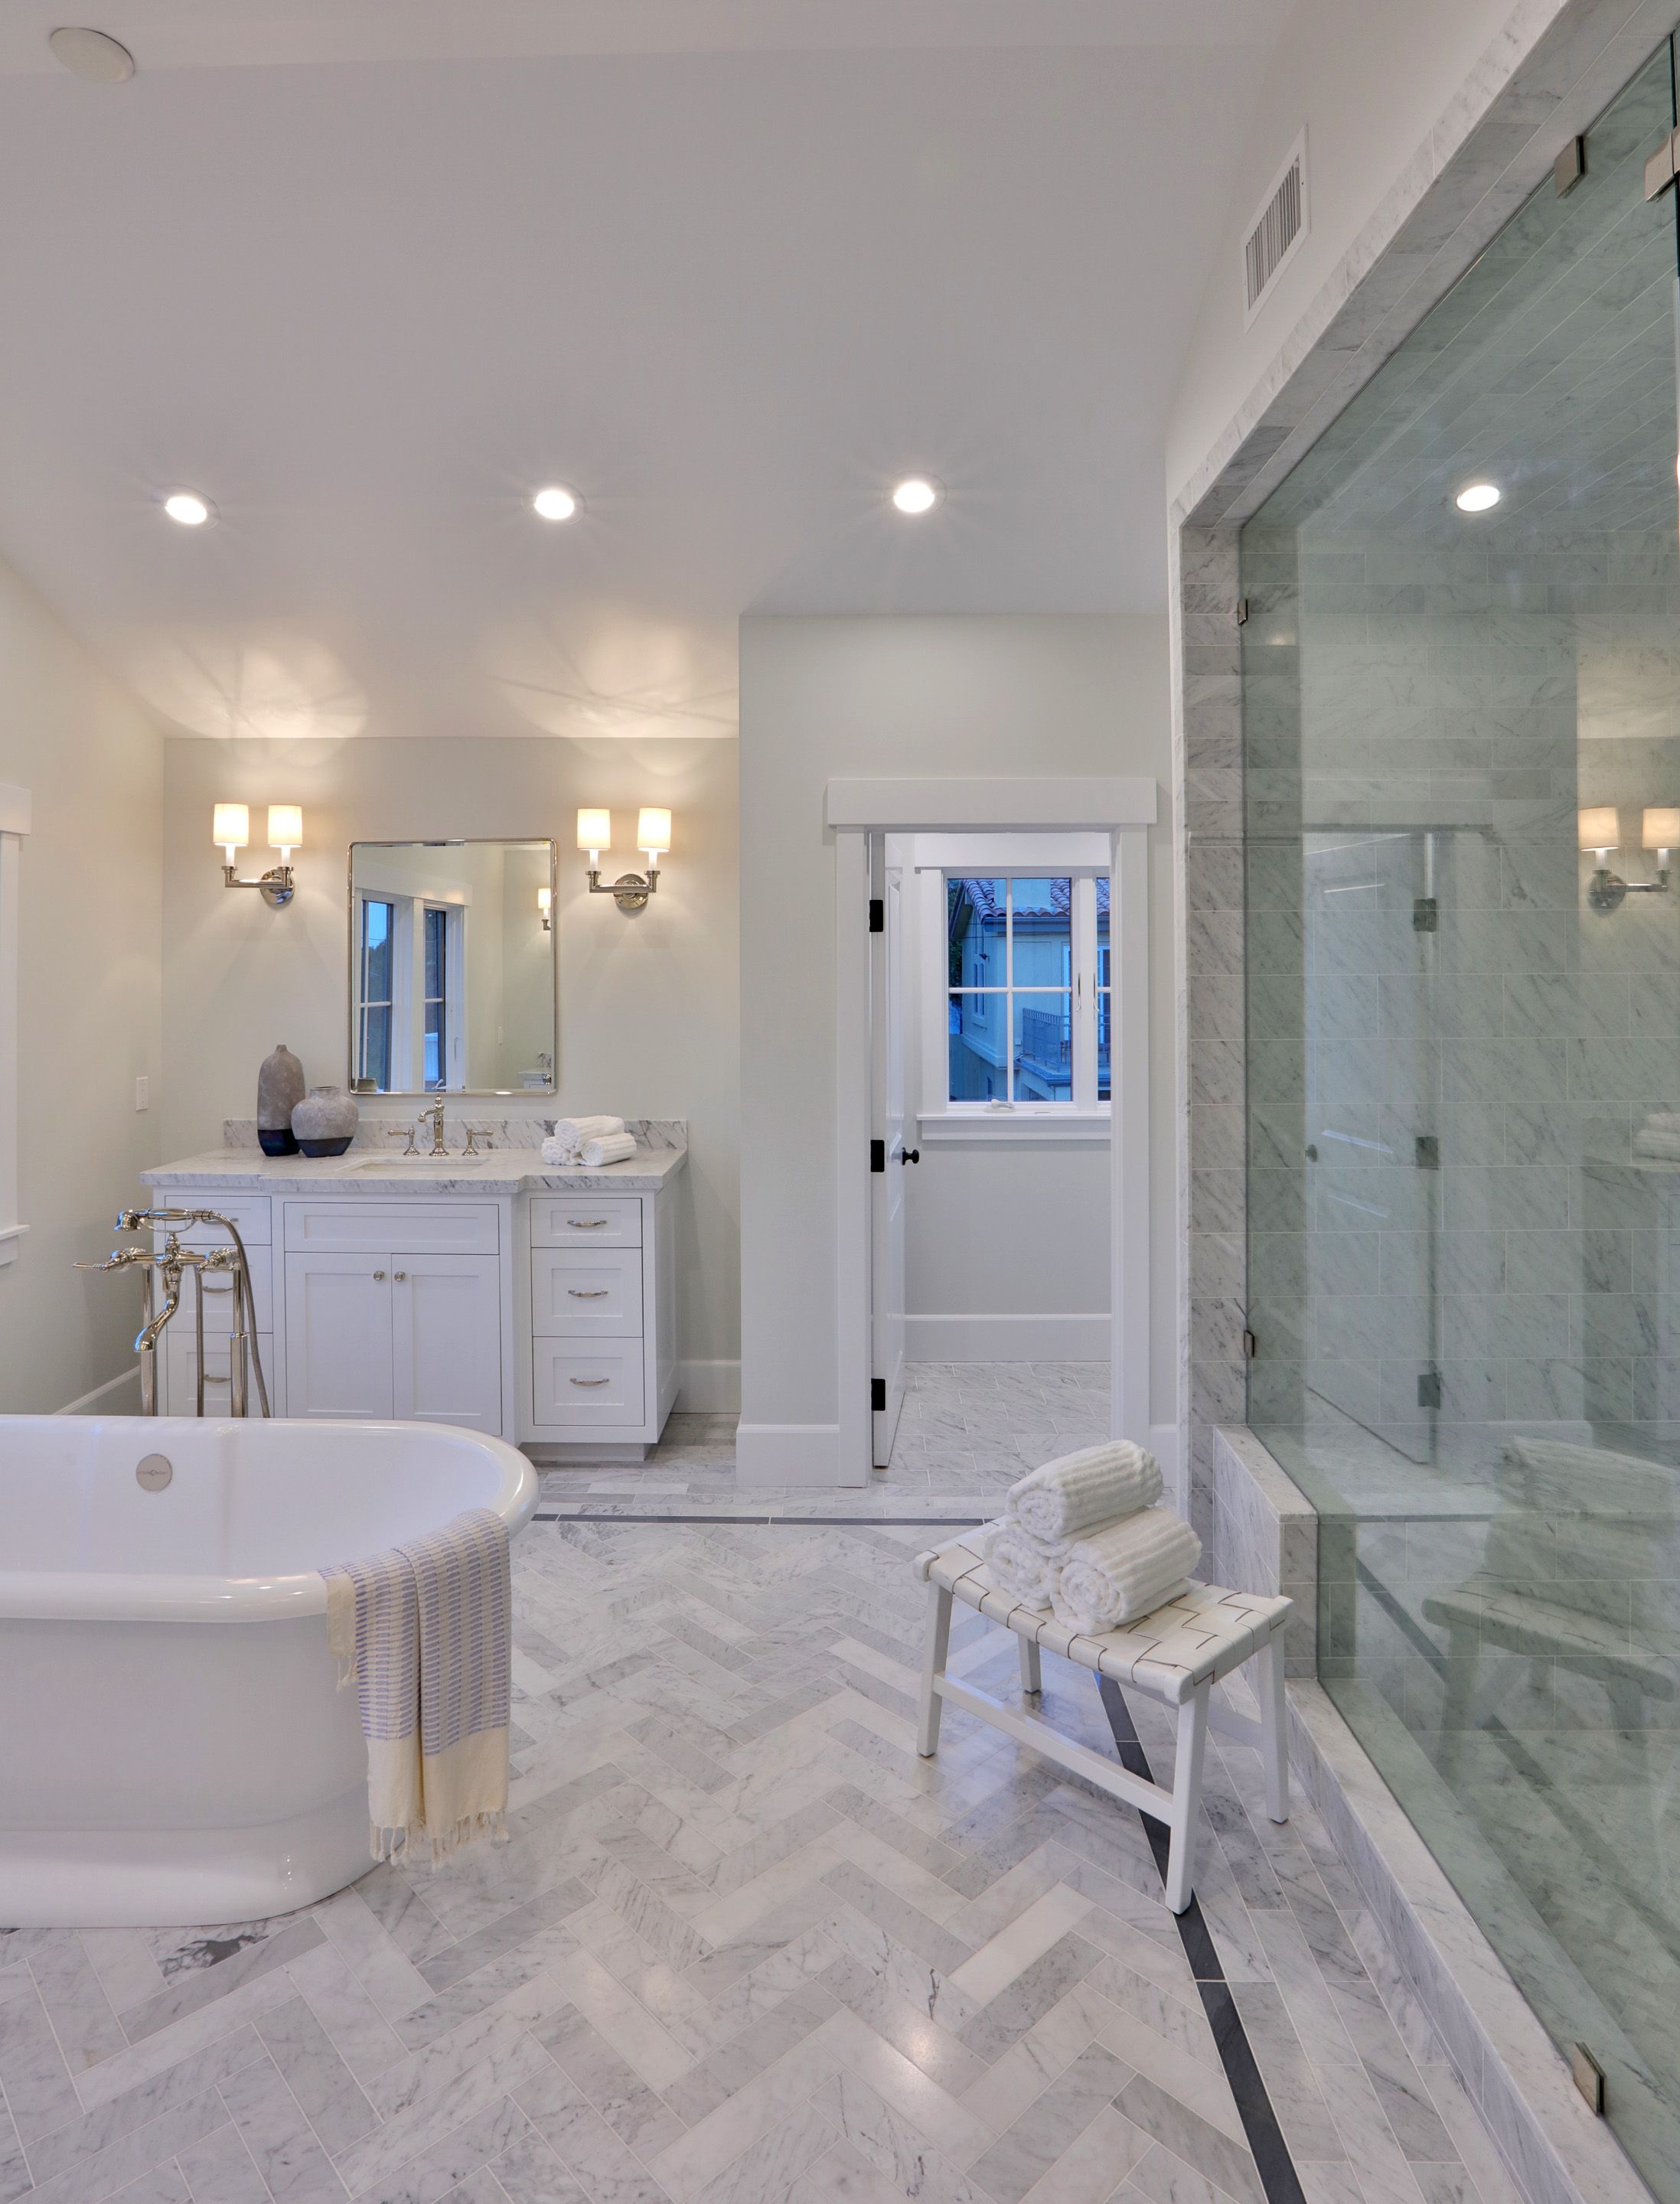 Master Bath In Luxury Home With Marble Floor Luxury Master Bathrooms Master Bathroom Design Bathroom Suites